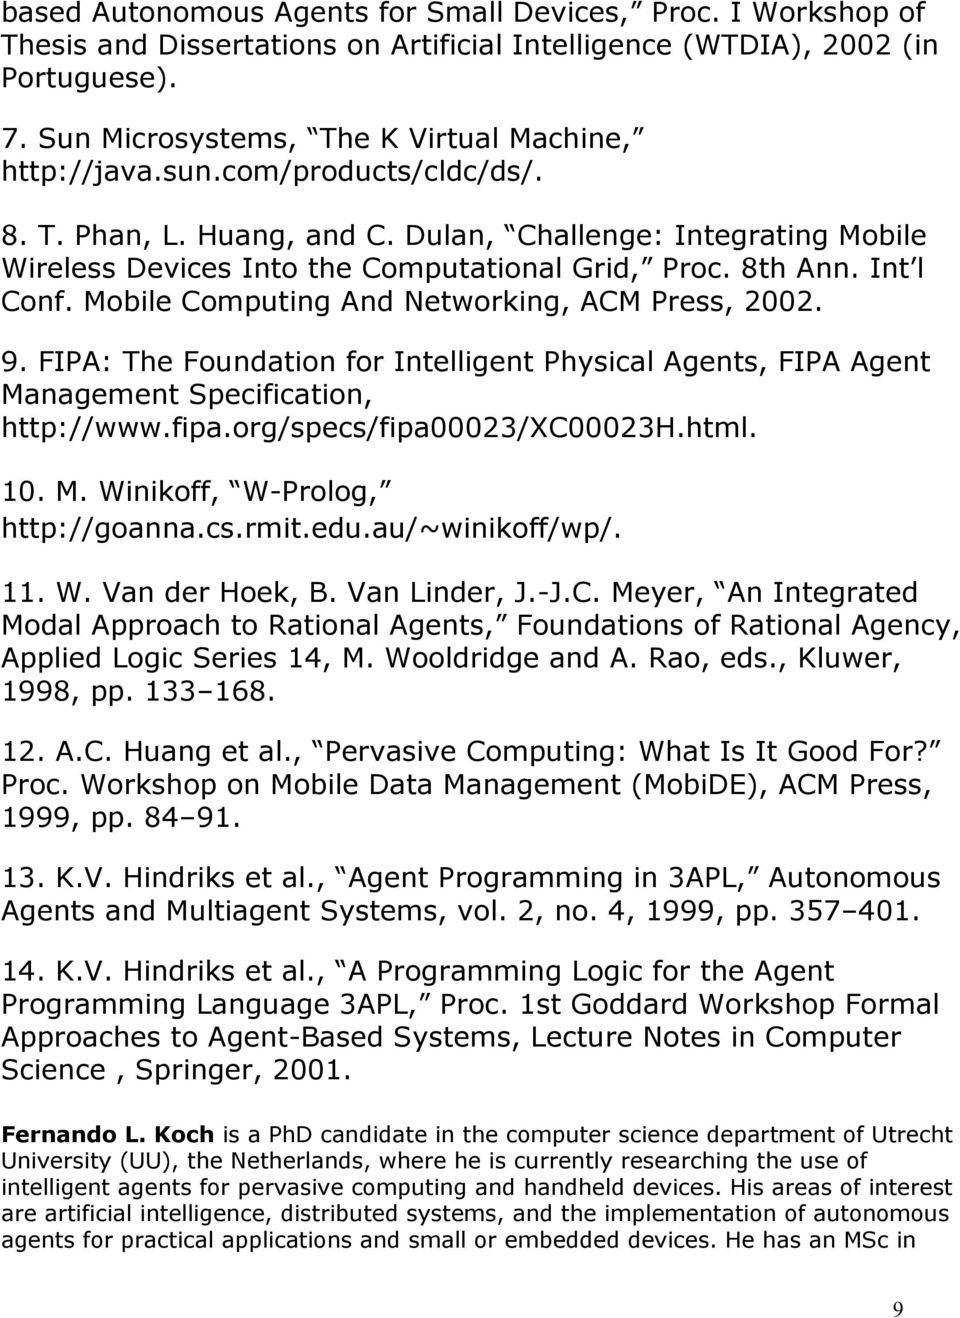 Mobie Computing And Networking, ACM Press, 2002. 9. FIPA: The Foundation for Inteigent Physica Agents, FIPA Agent Management Specification, http://www.fipa.org/specs/fipa00023/xc00023h.htm. 10. M. Winikoff, W-Proog, http://goanna.